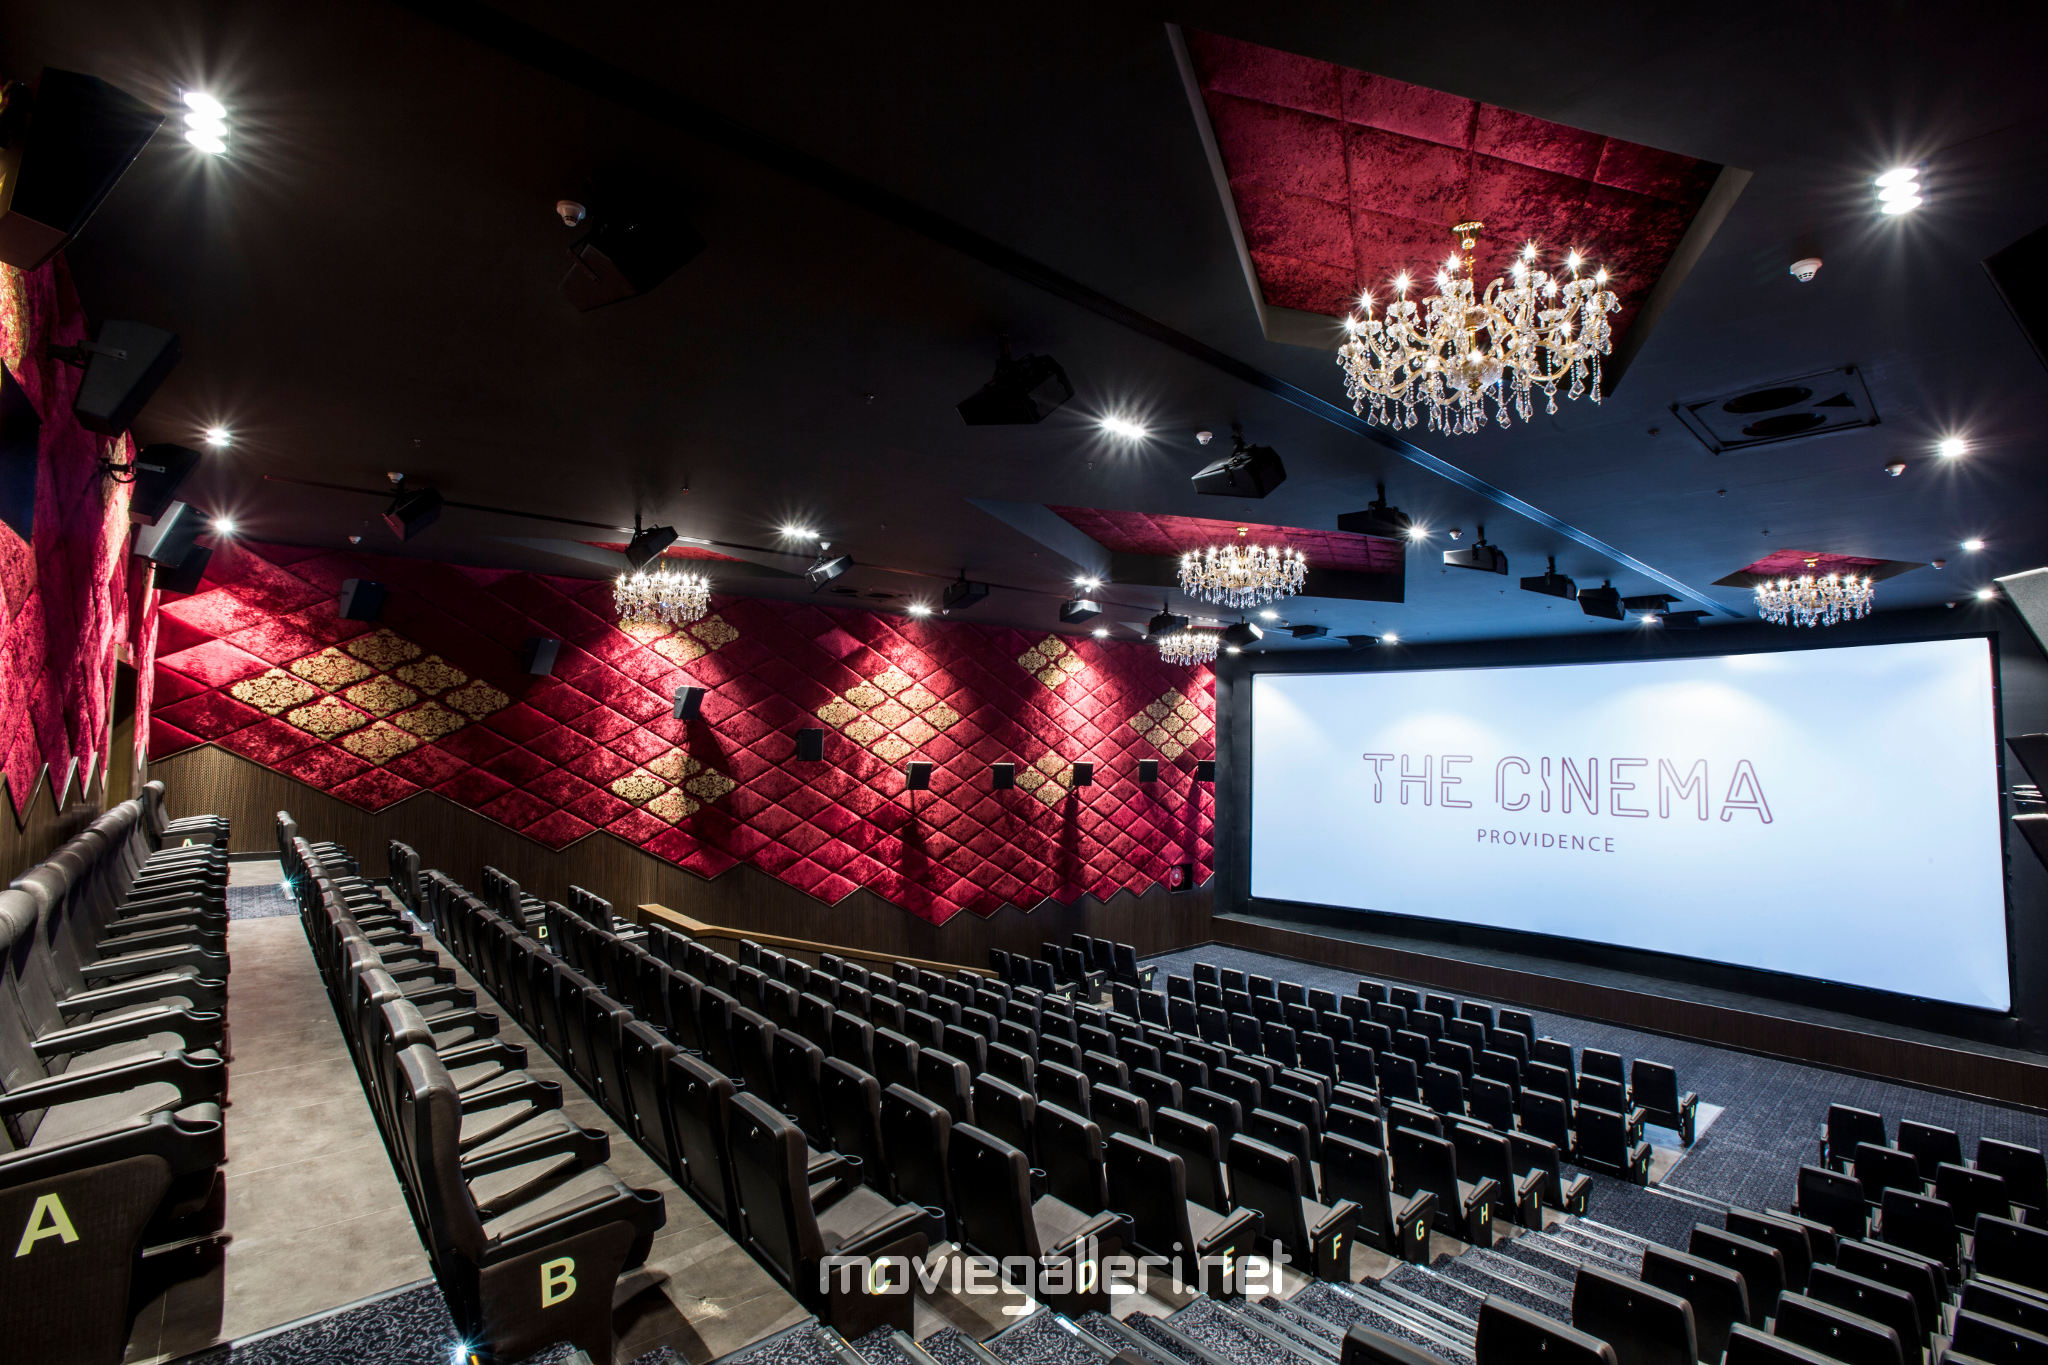 spi cinemas puducherry the cinema screen